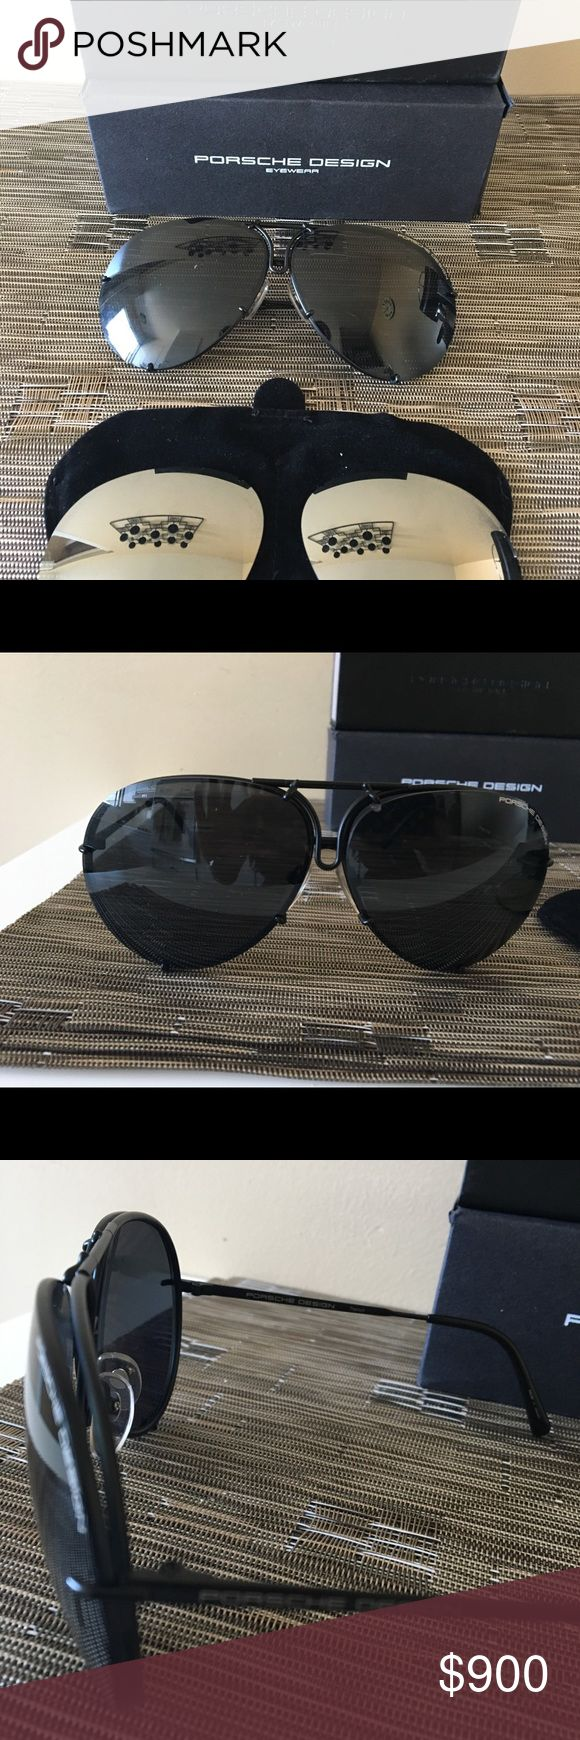 Porsche design eyewear Almost brand new, wear couple times , too big to my face, Accessories Glasses